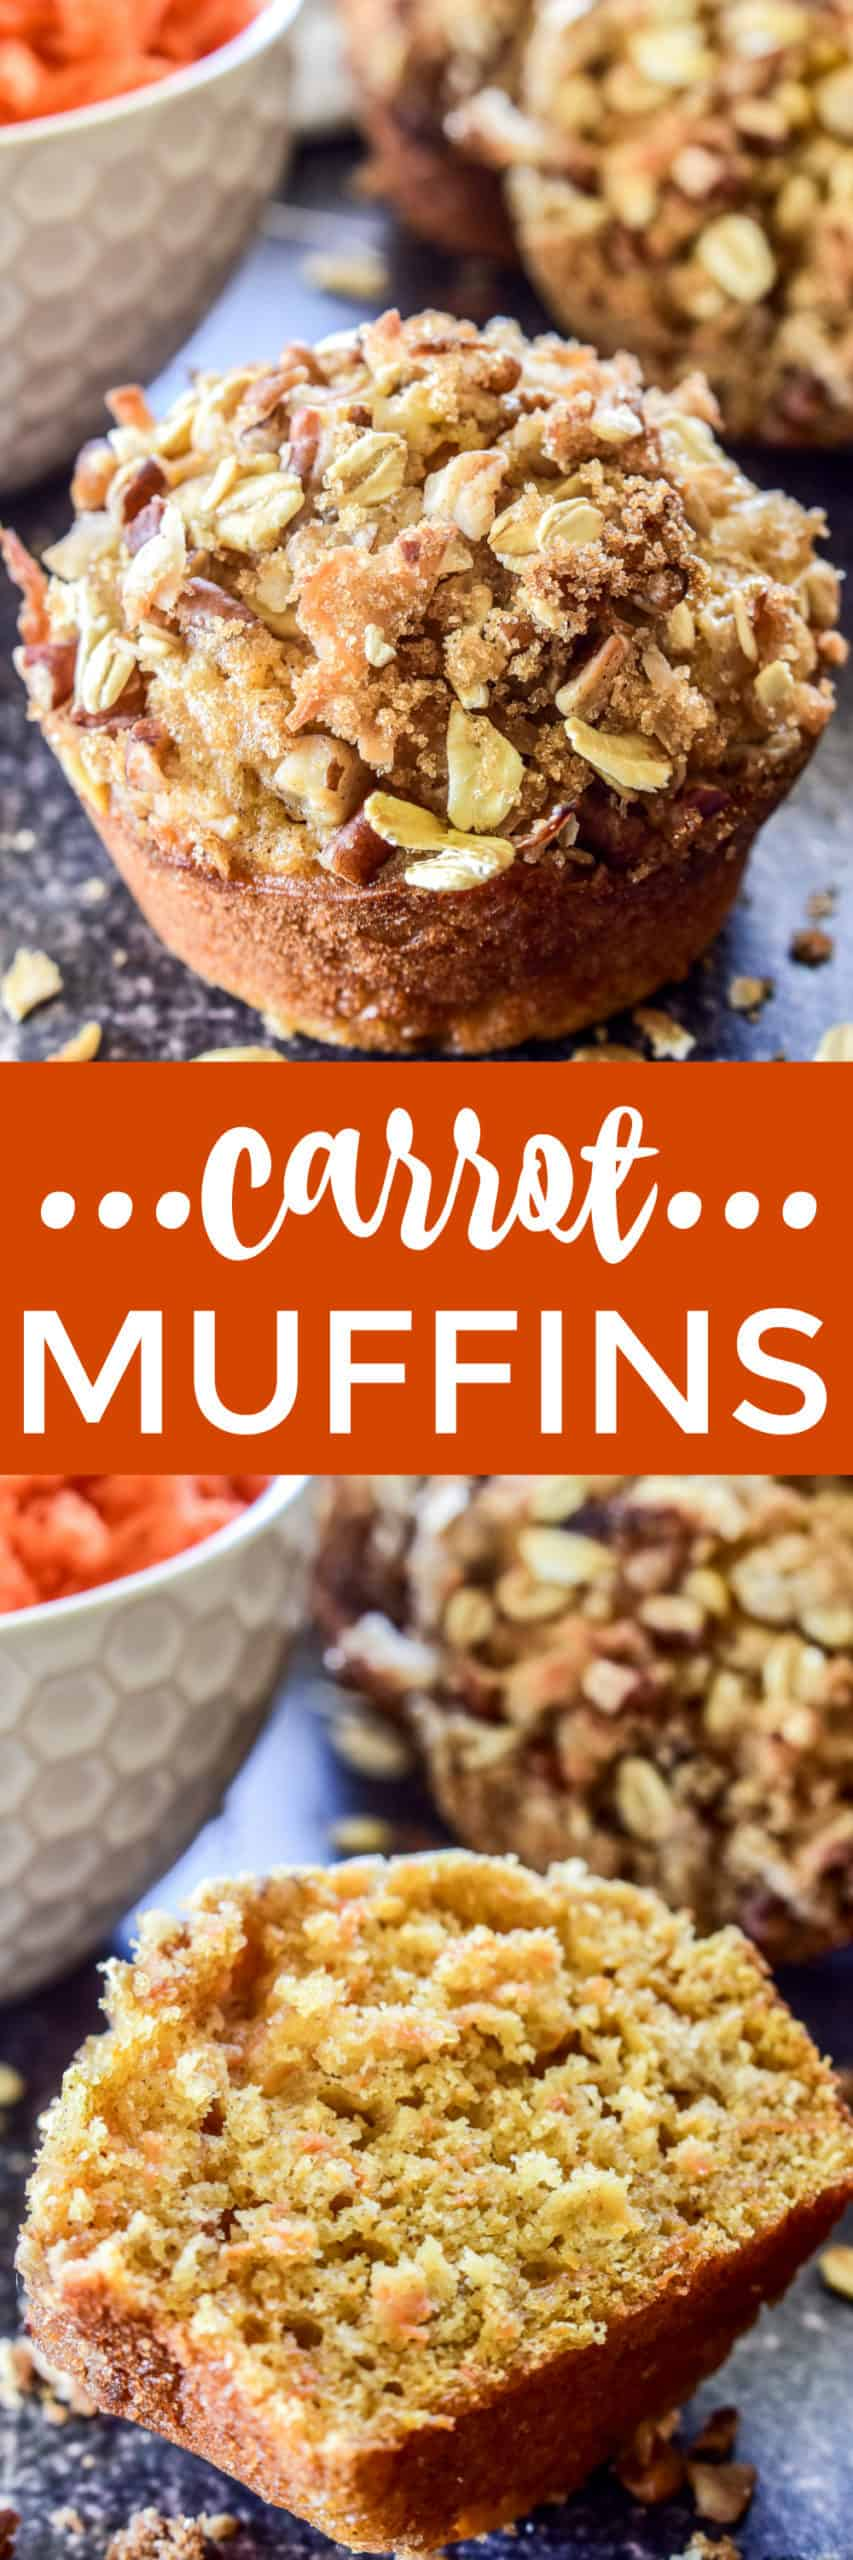 Carrot Muffins collage with text